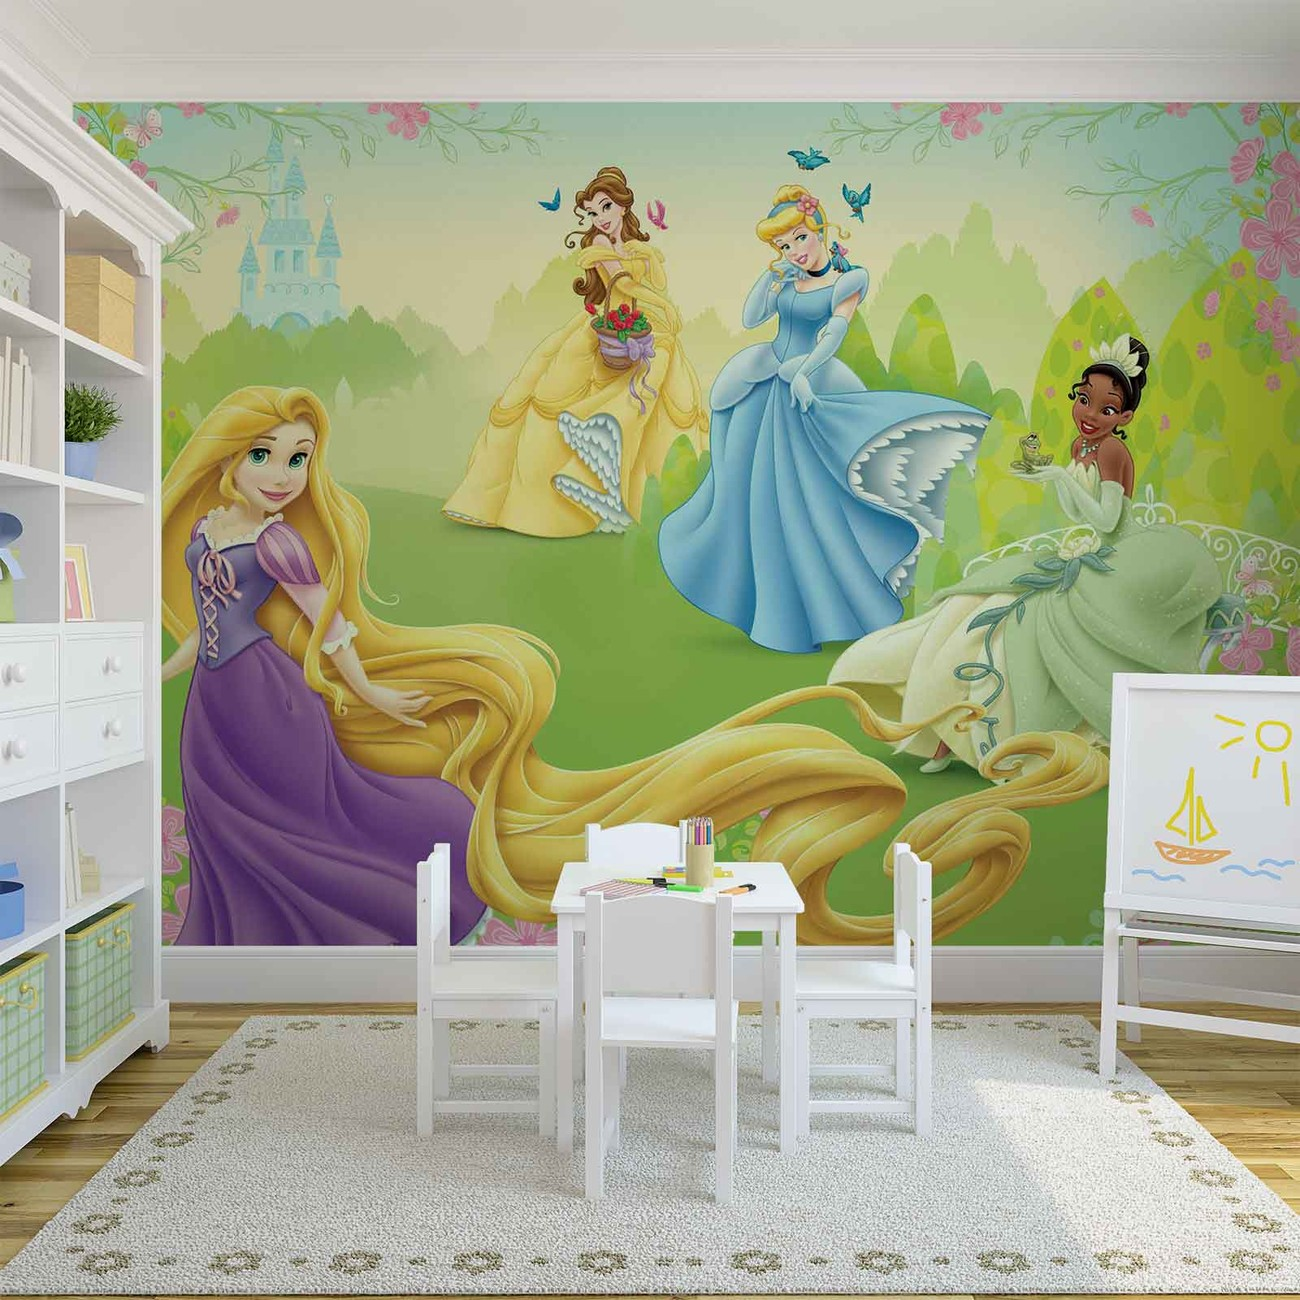 Disney princesses rapunzel tiana belle wall paper mural for Disney princess mural asda